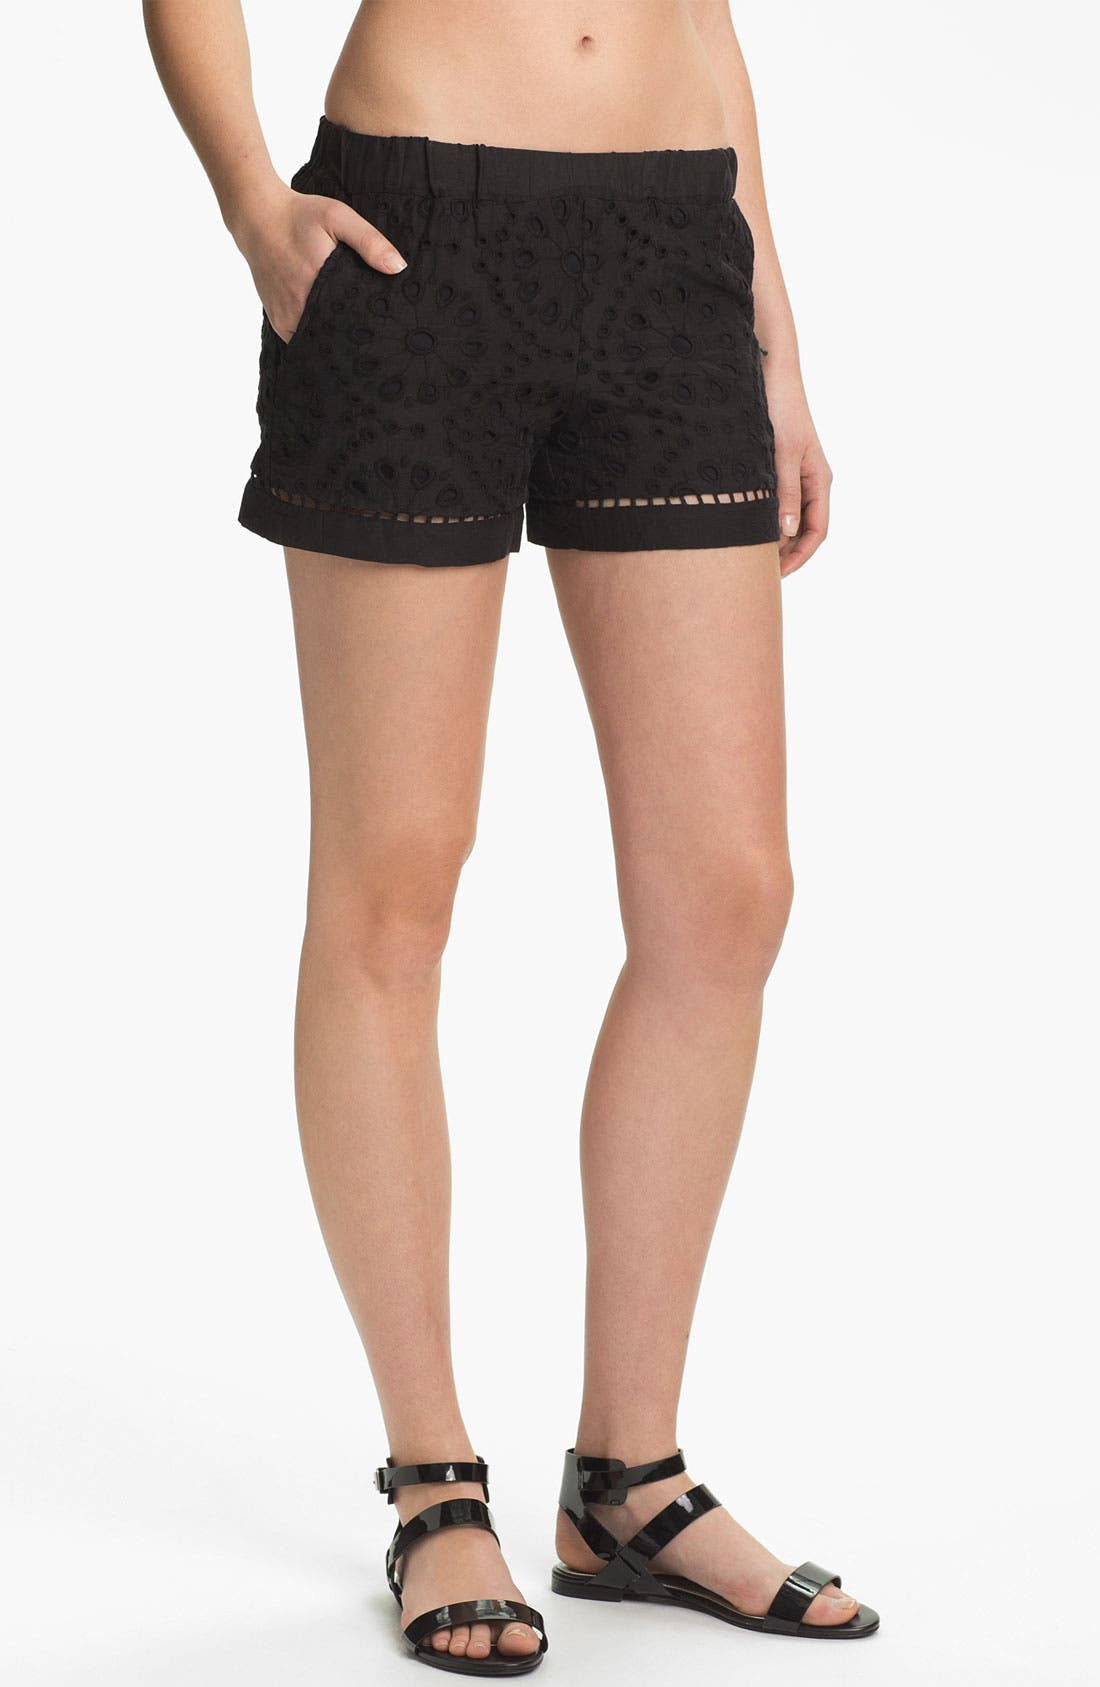 Alternate Image 1 Selected - Ella Moss 'Heidi' Eyelet Lace Shorts